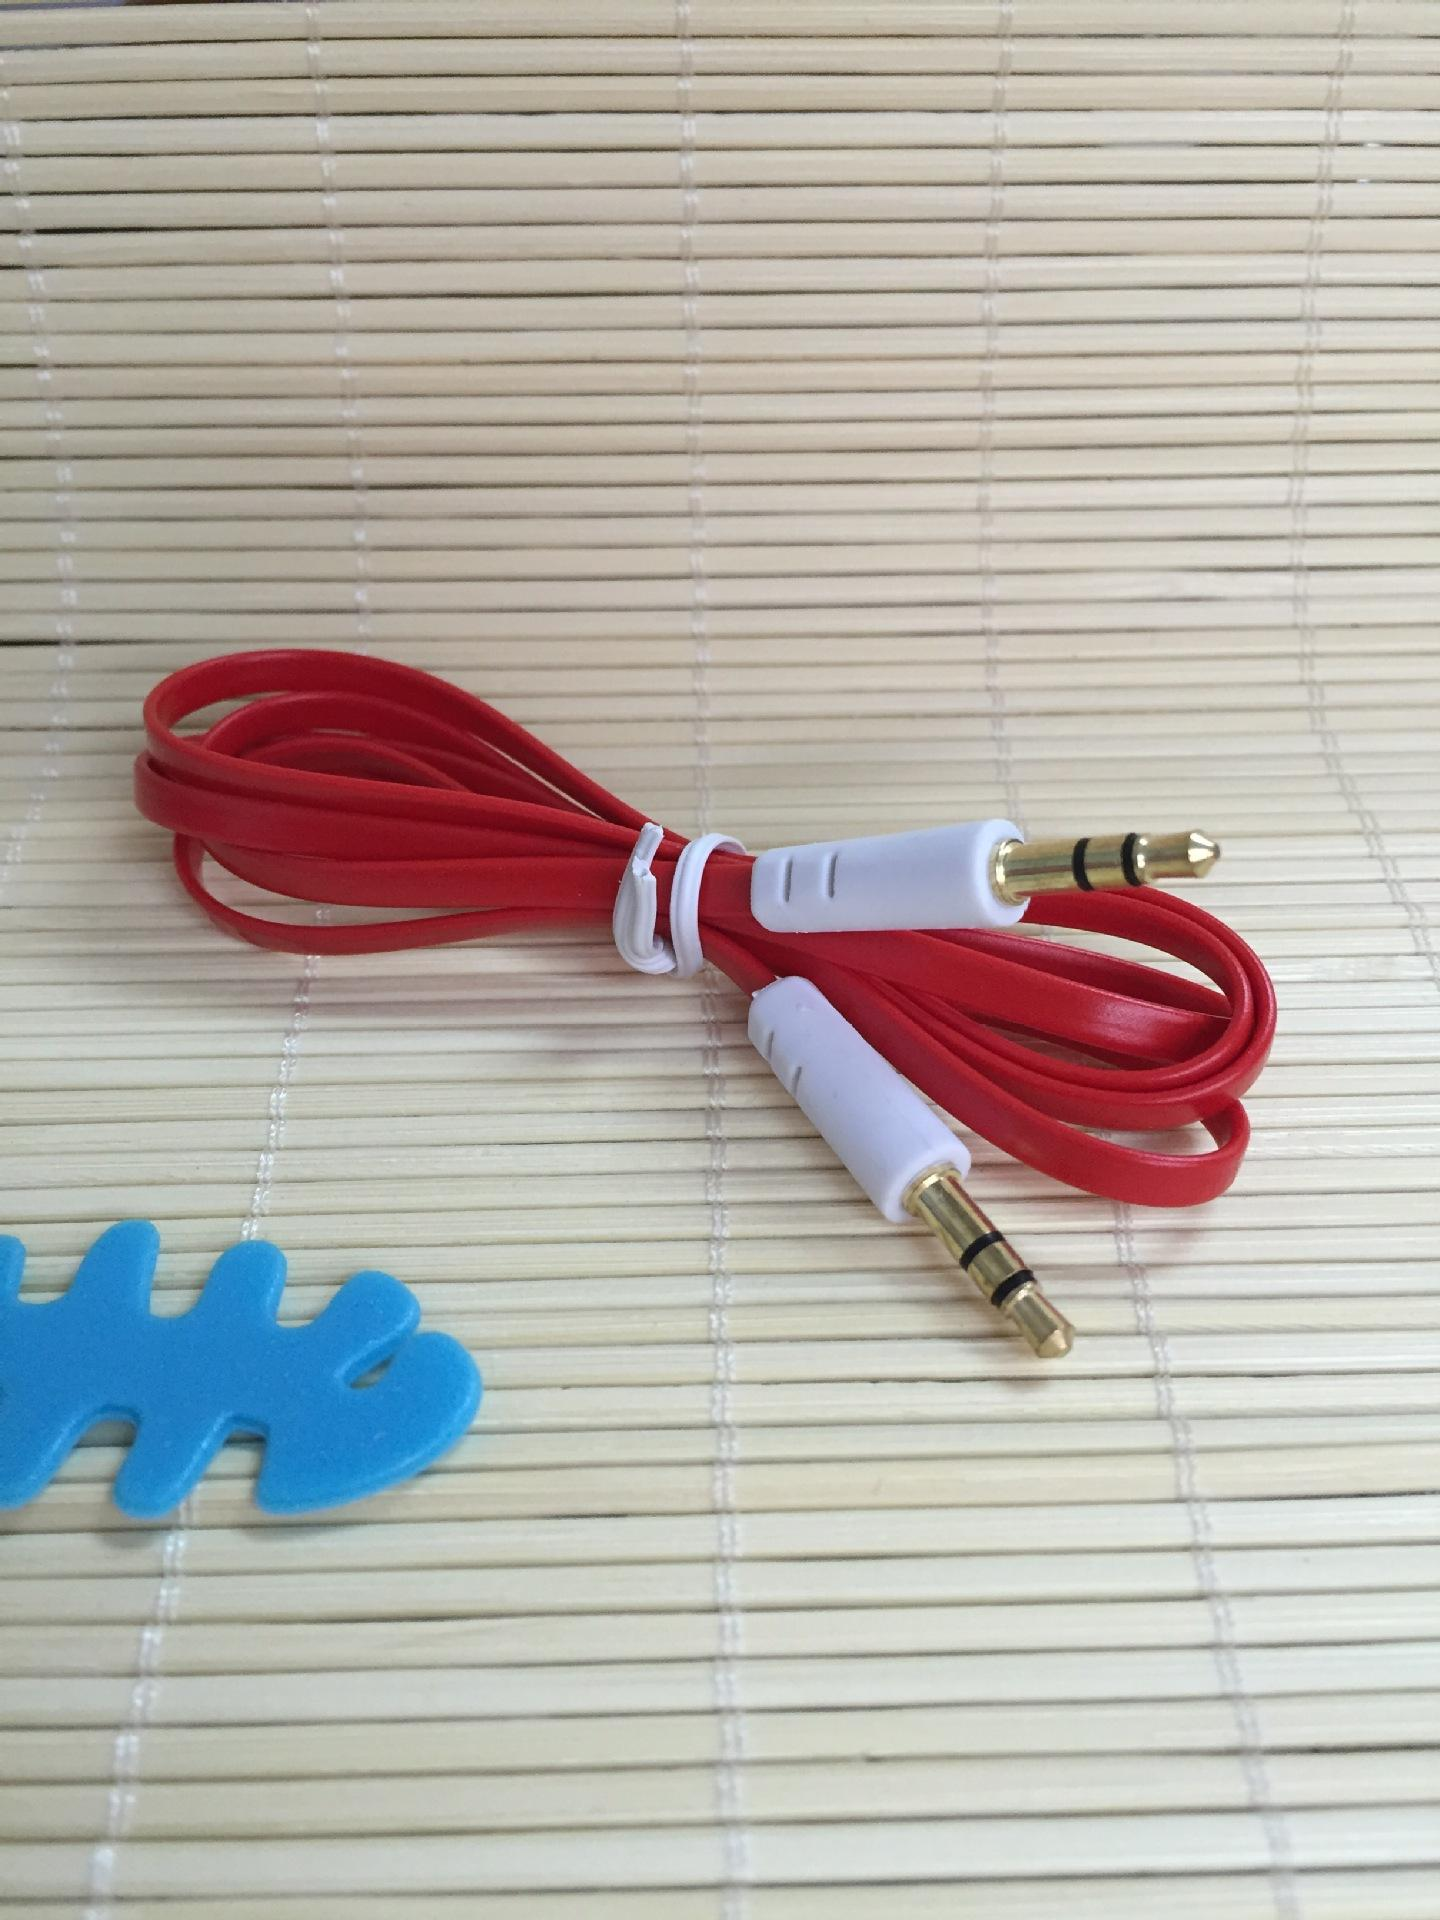 3.5mm Male to Male M/M Stereo Audio Jack for AUX Auxiliary Cable Extended Auxiliary Cable Smart Phone Tablet Audio aux cable 1M 3FT